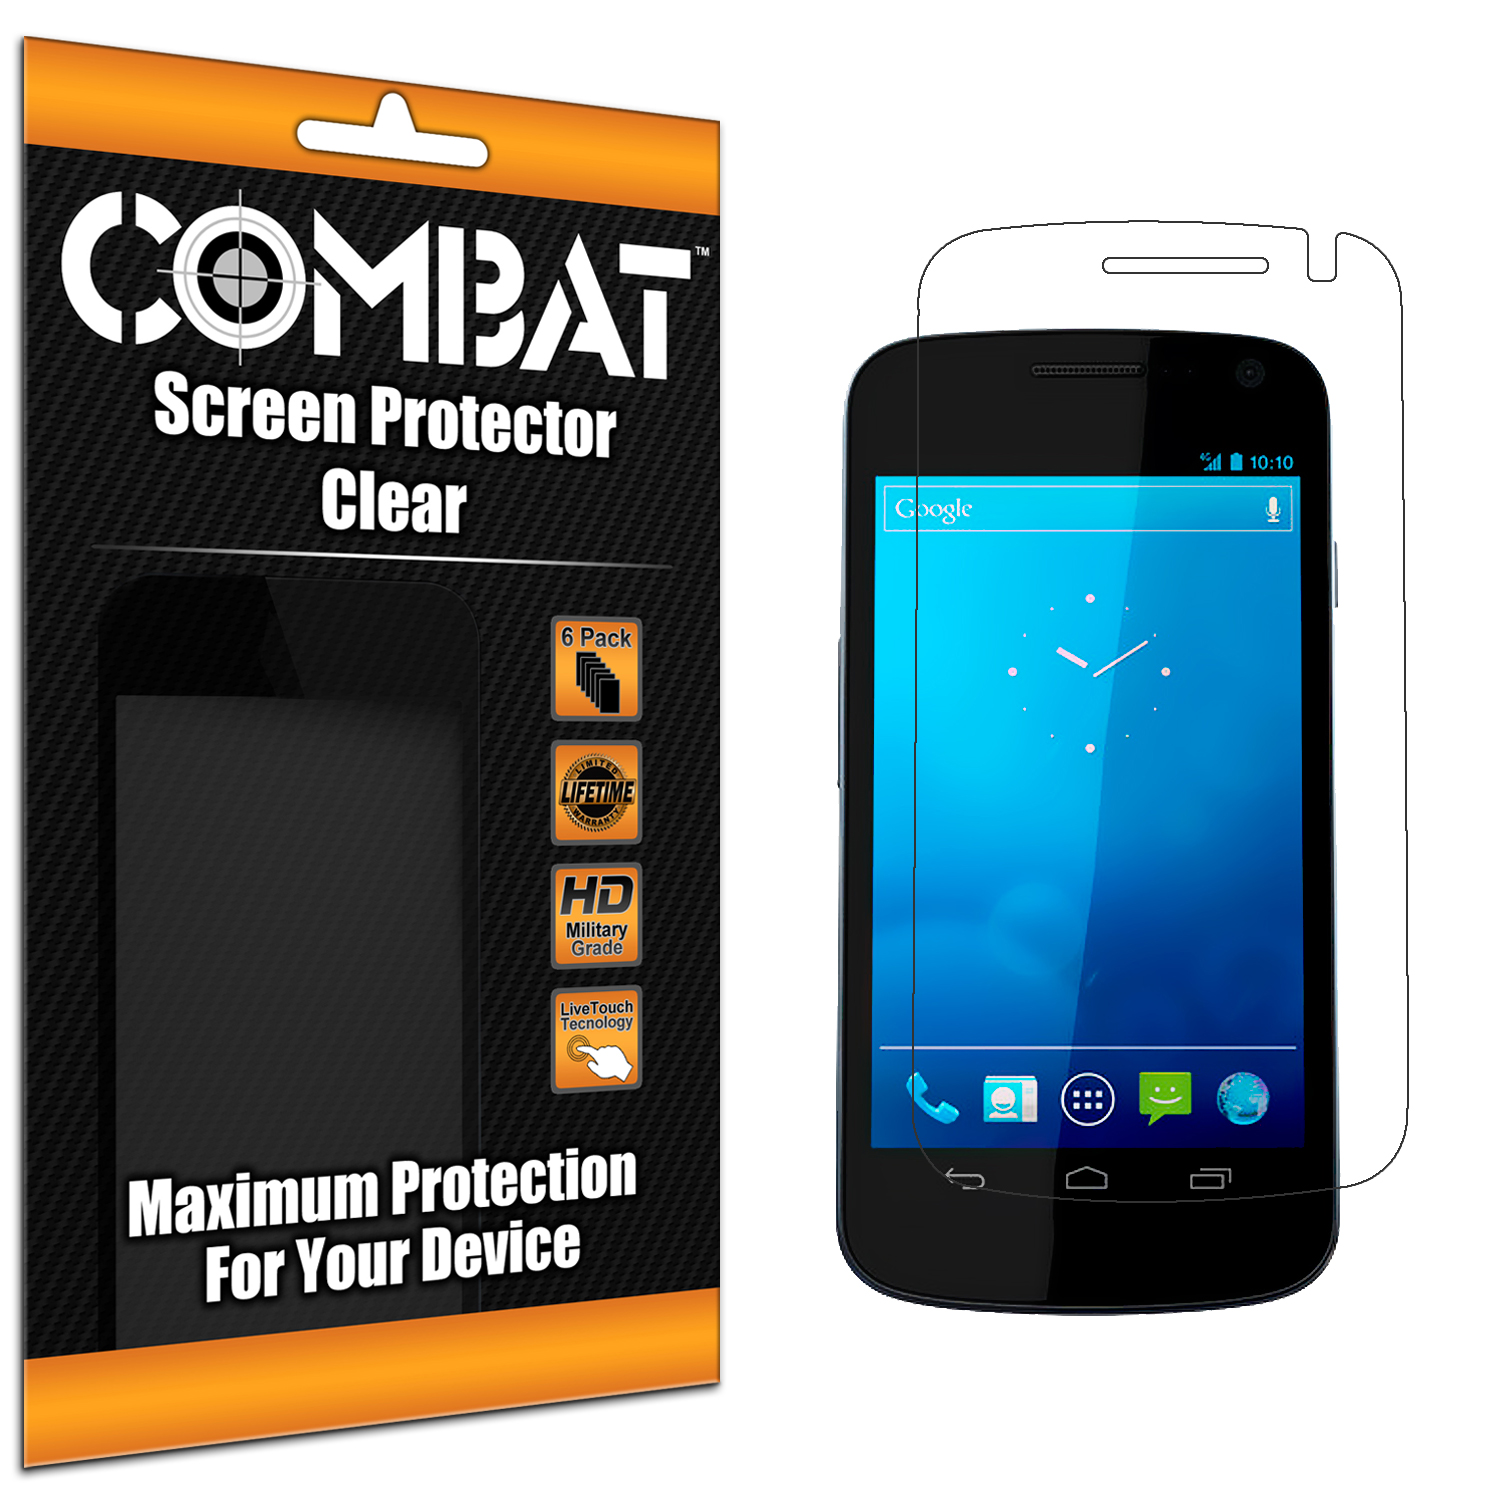 Samsung Droid Prime i515 Combat 6 Pack HD Clear Screen Protector